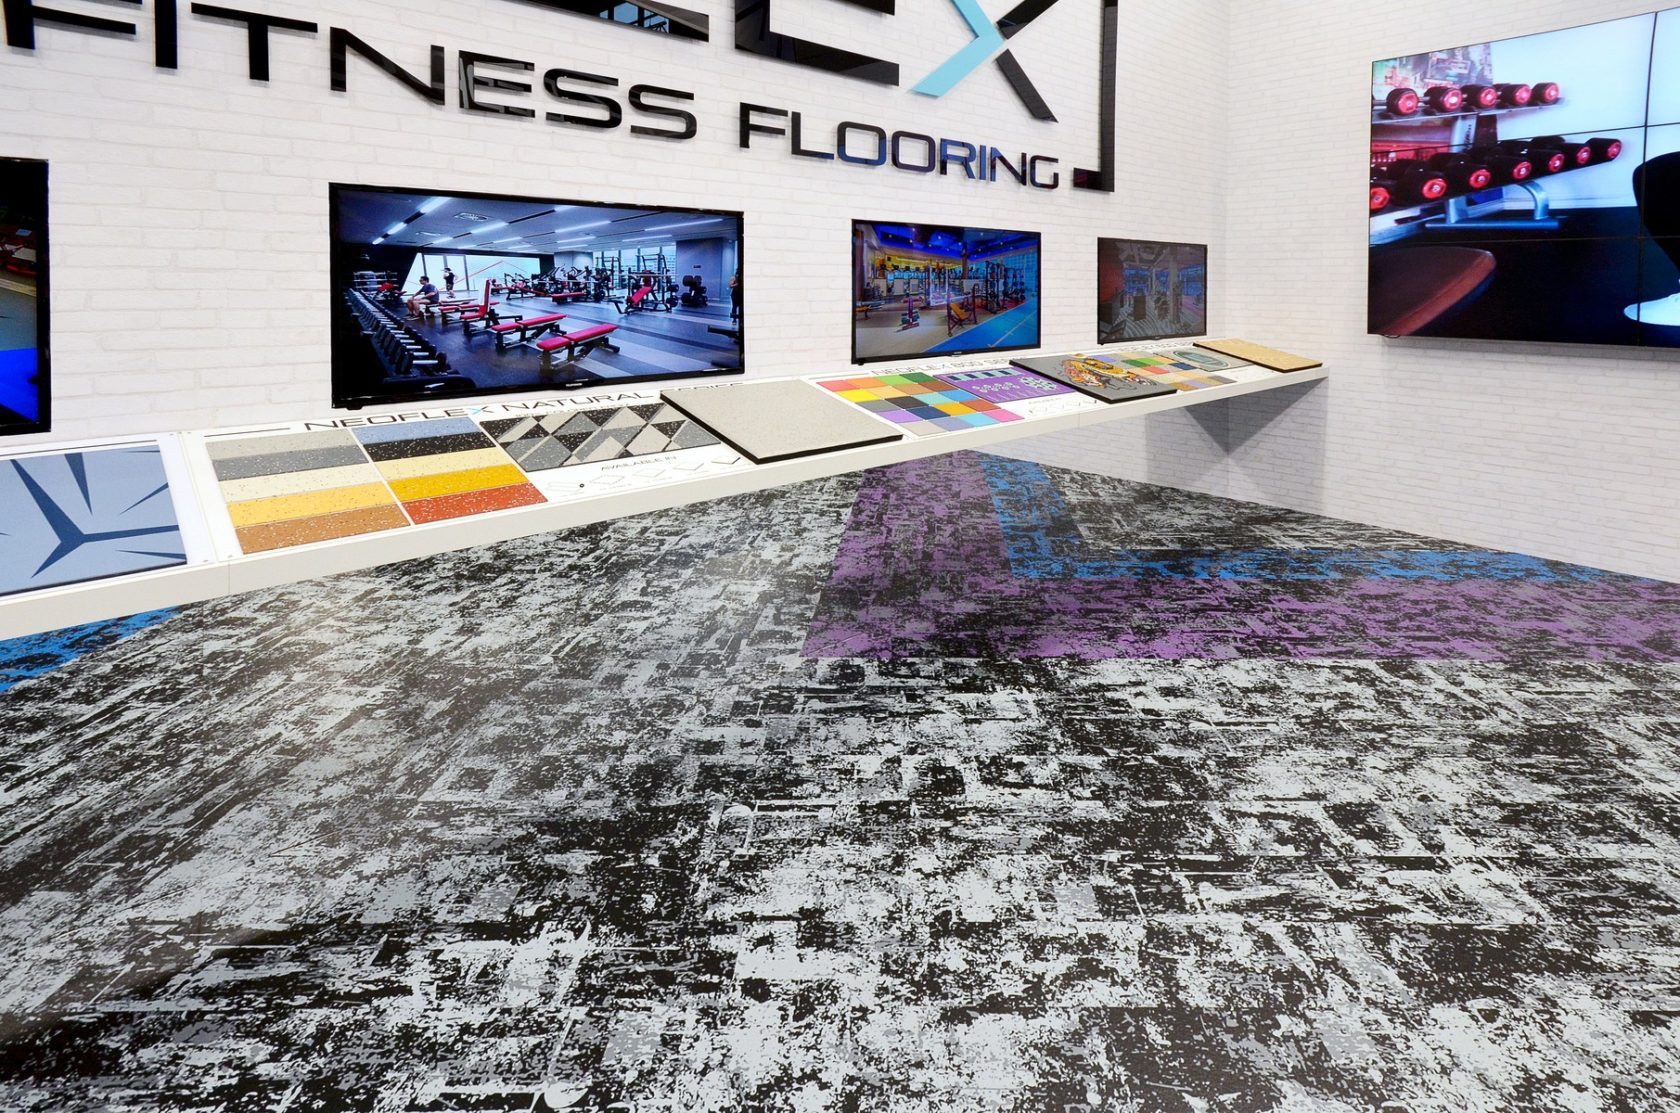 Rephouse Neoflex Fitness Floring Messestand Fibo 2018 1